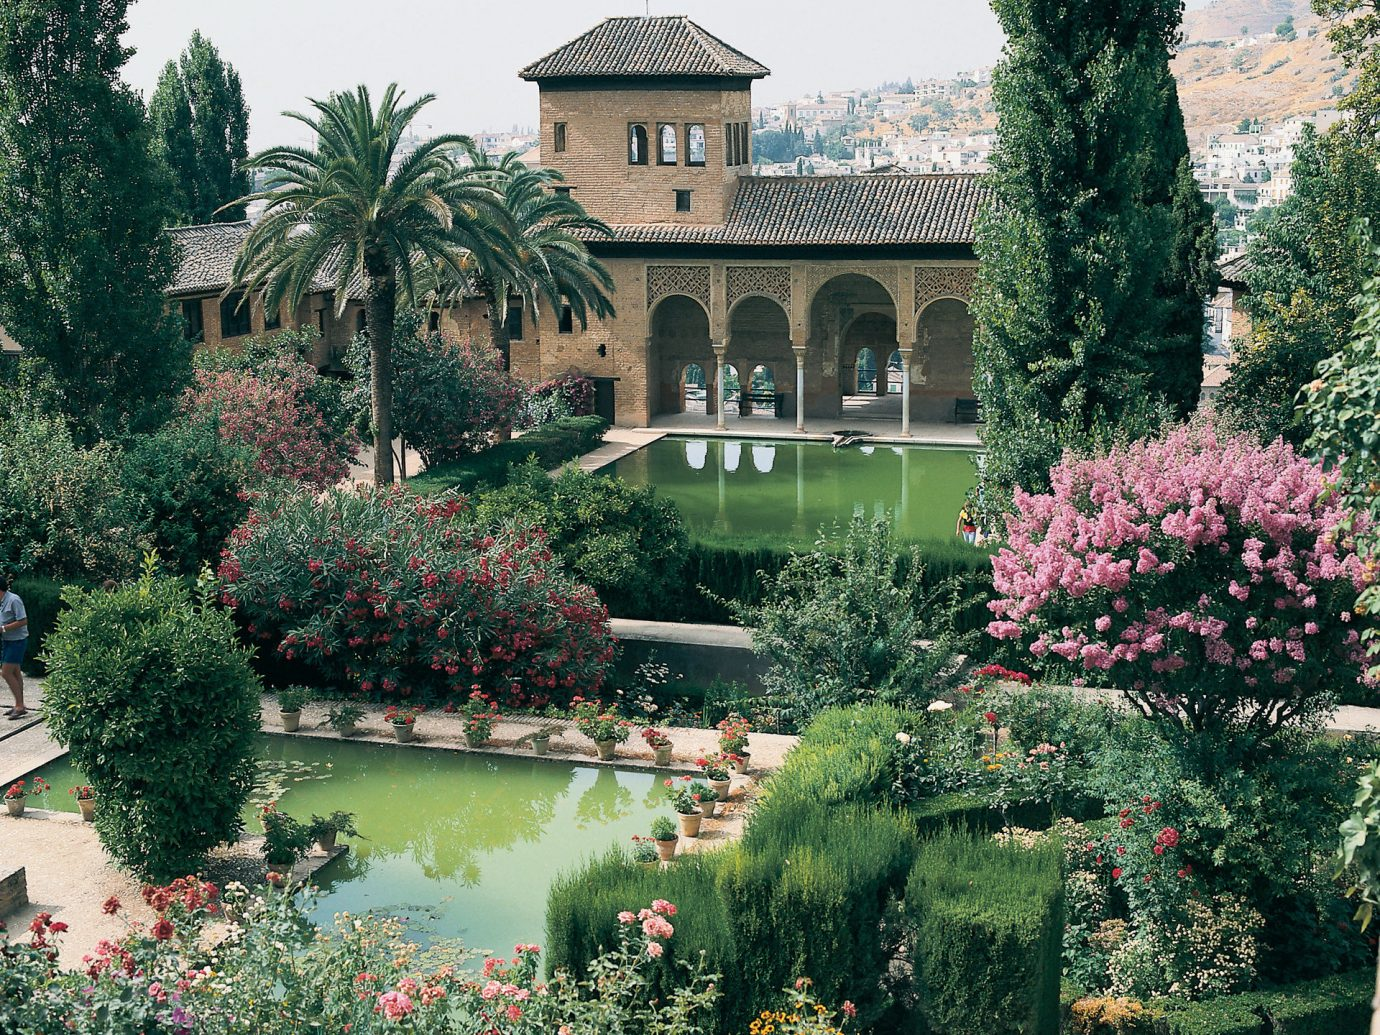 Trip Ideas tree outdoor building Garden flower bushes estate botany plant house green home Courtyard mansion botanical garden yard backyard lawn surrounded palace park stone colonnade